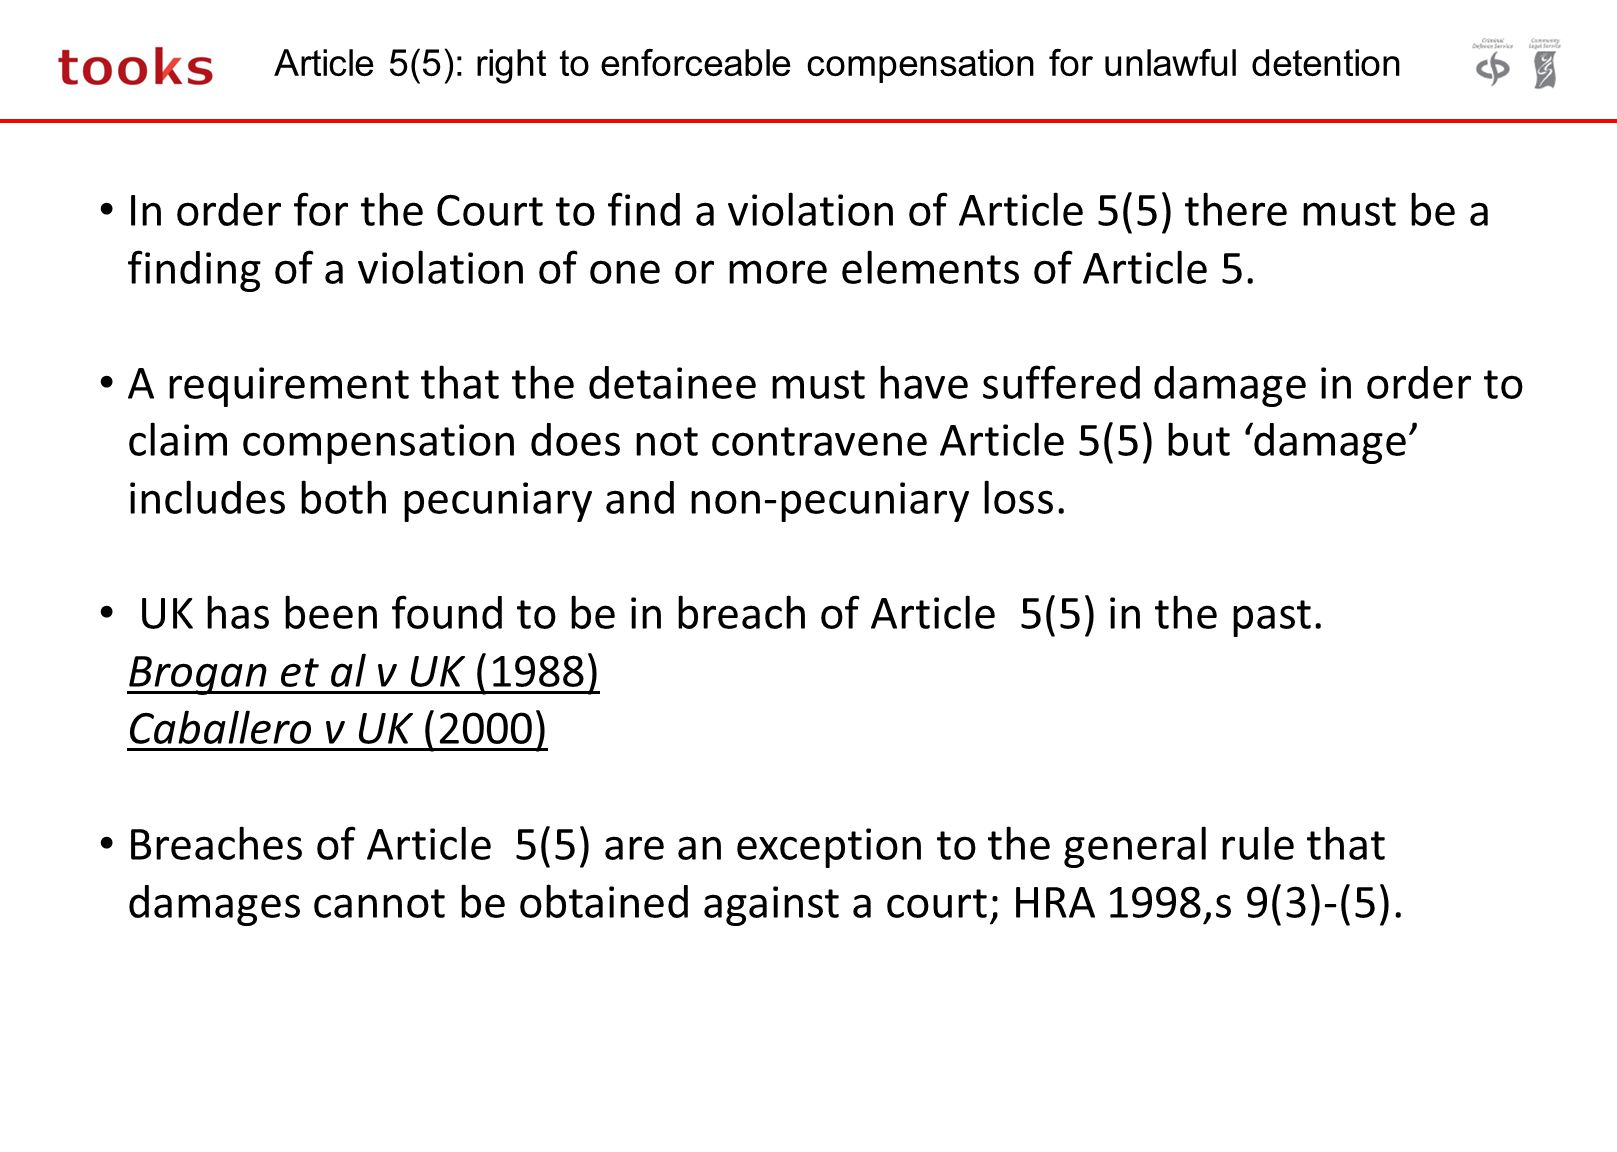 Article 5(5): right to enforceable compensation for unlawful detention In order for the Court to find a violation of Article 5(5) there must be a find